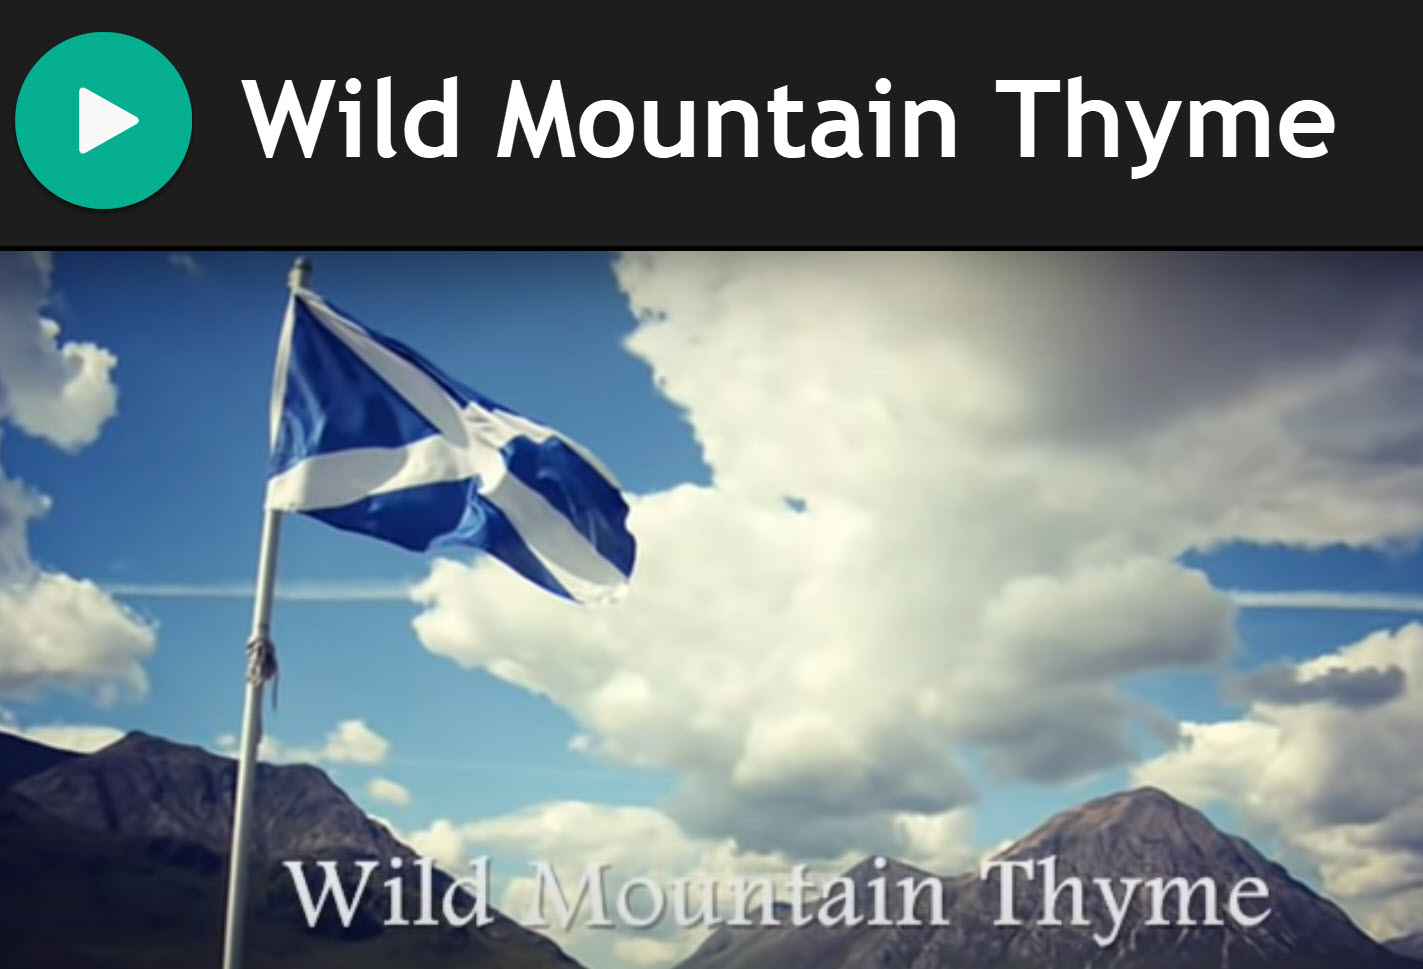 Wild Mountain Thyme by Sarah Calderwood for Practice Chanter